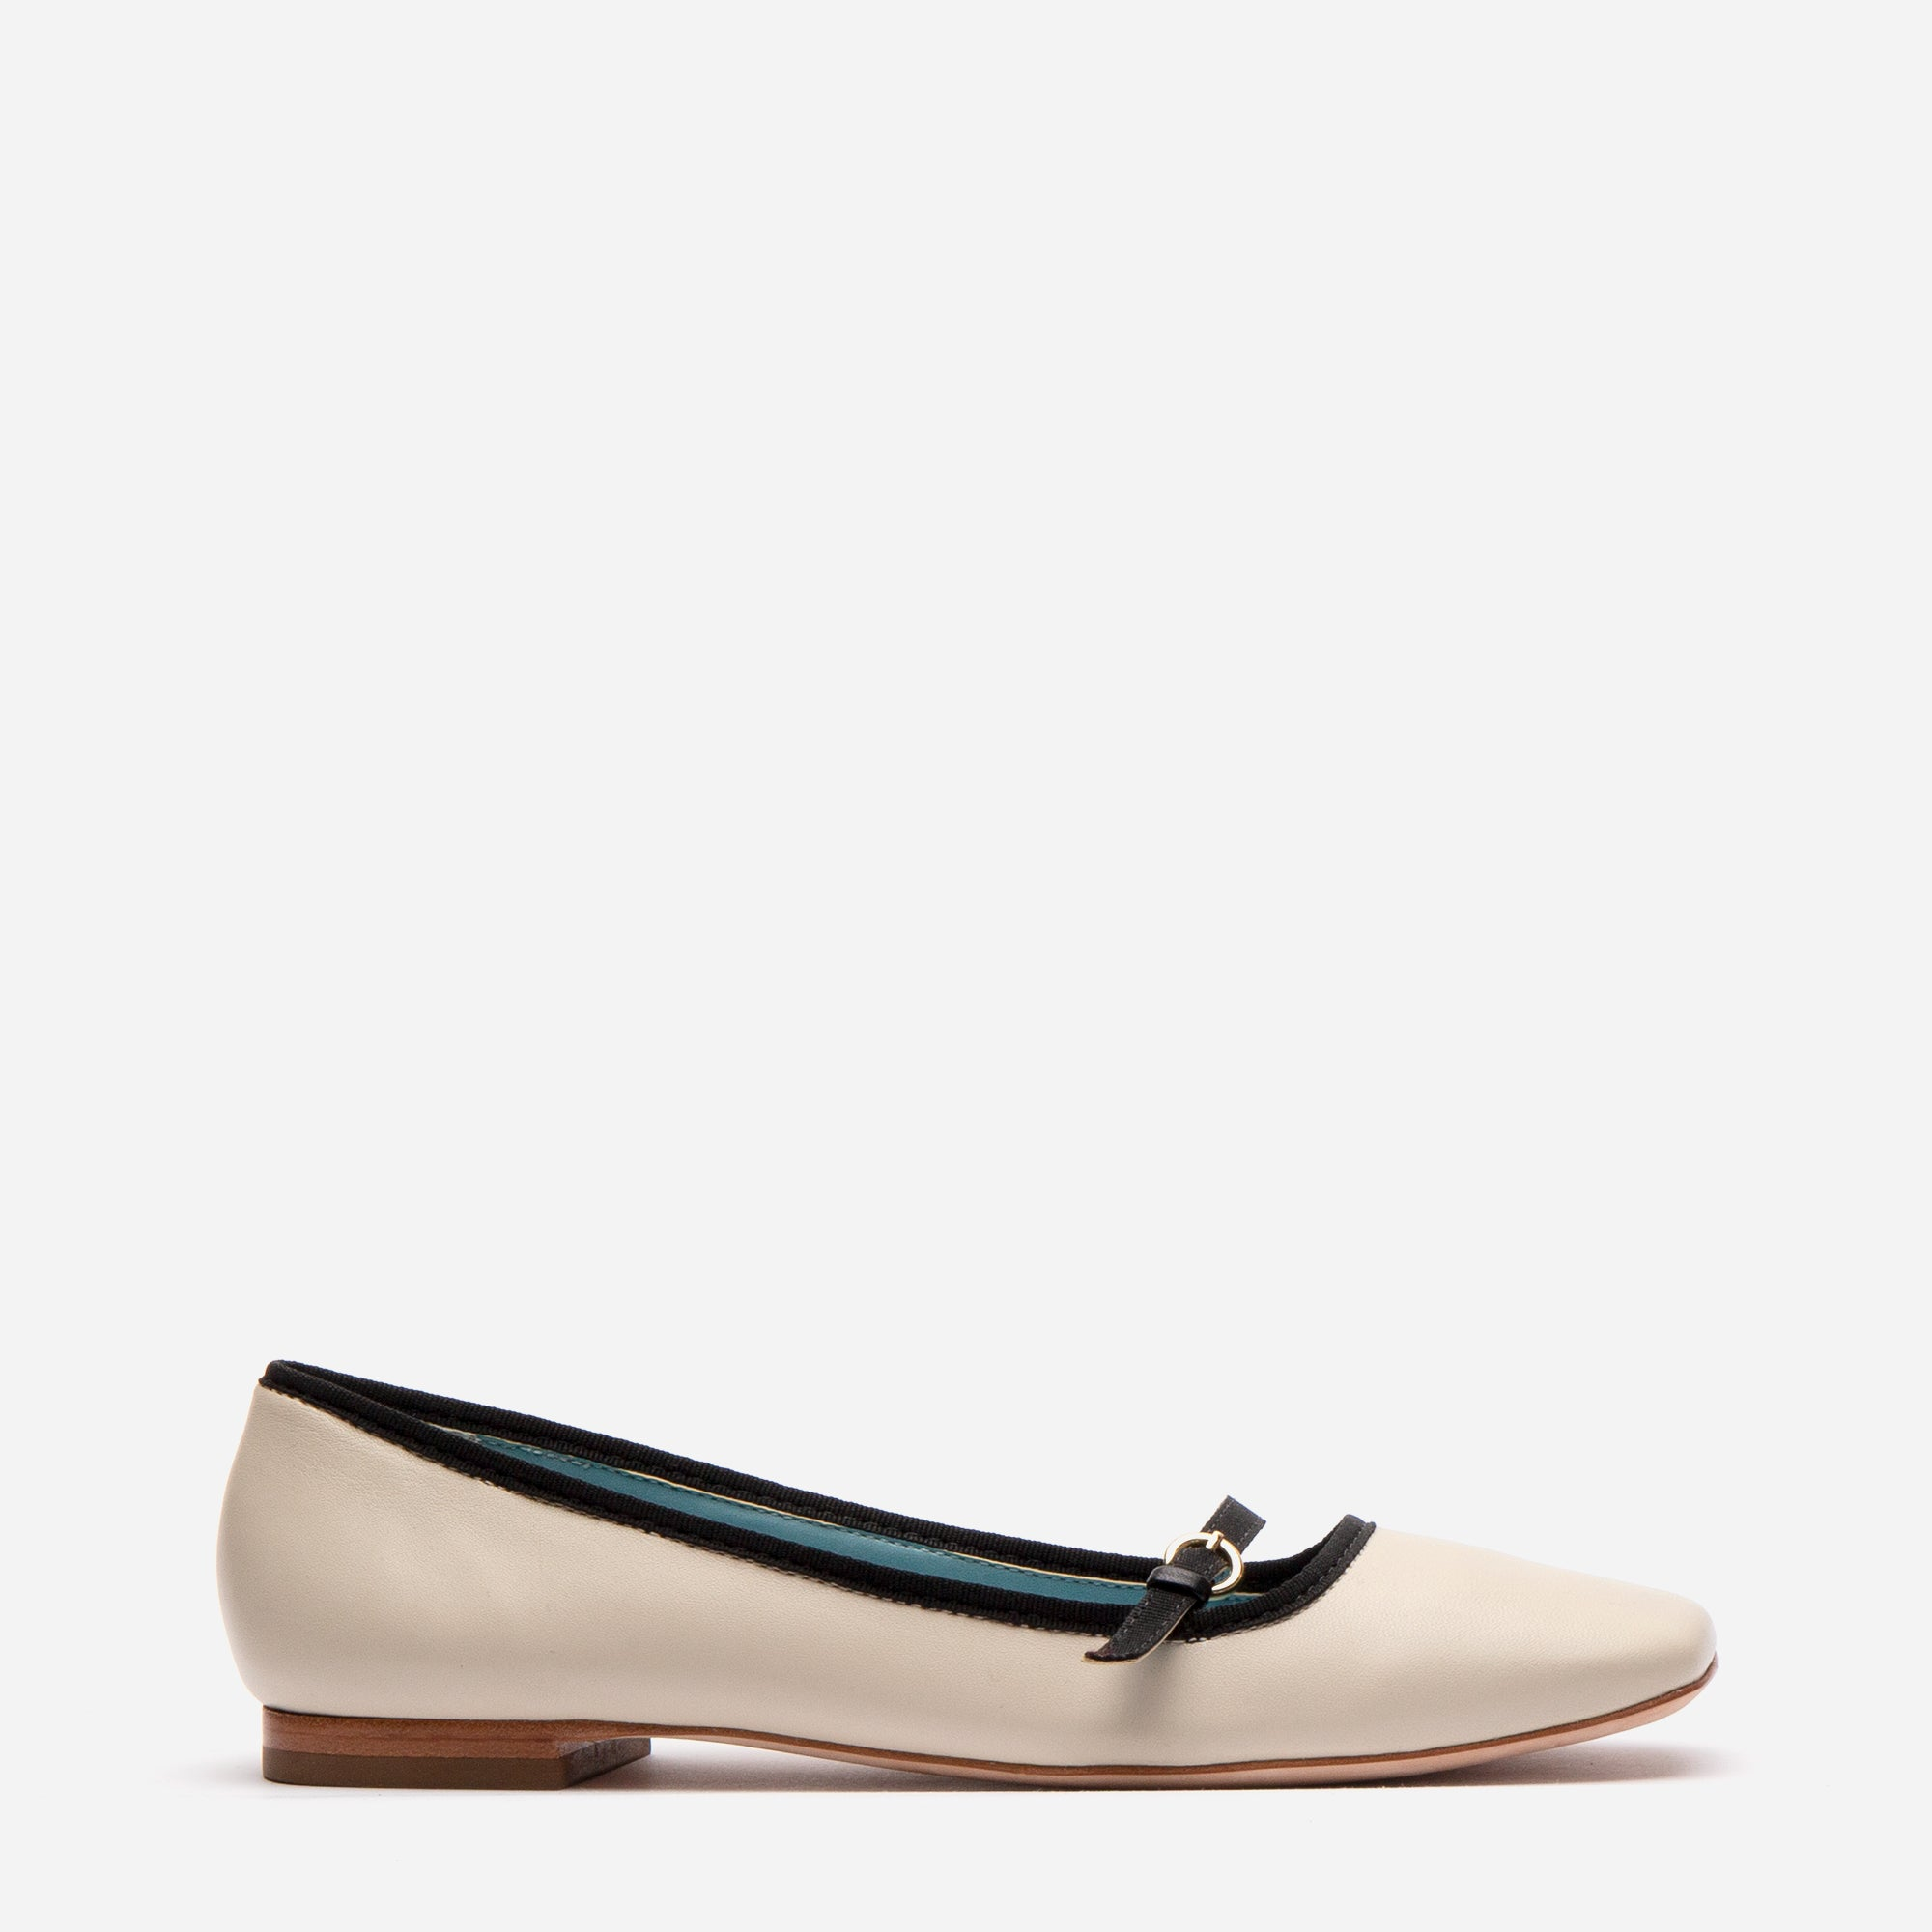 Josie Leather Flat Oyster Black - Frances Valentine